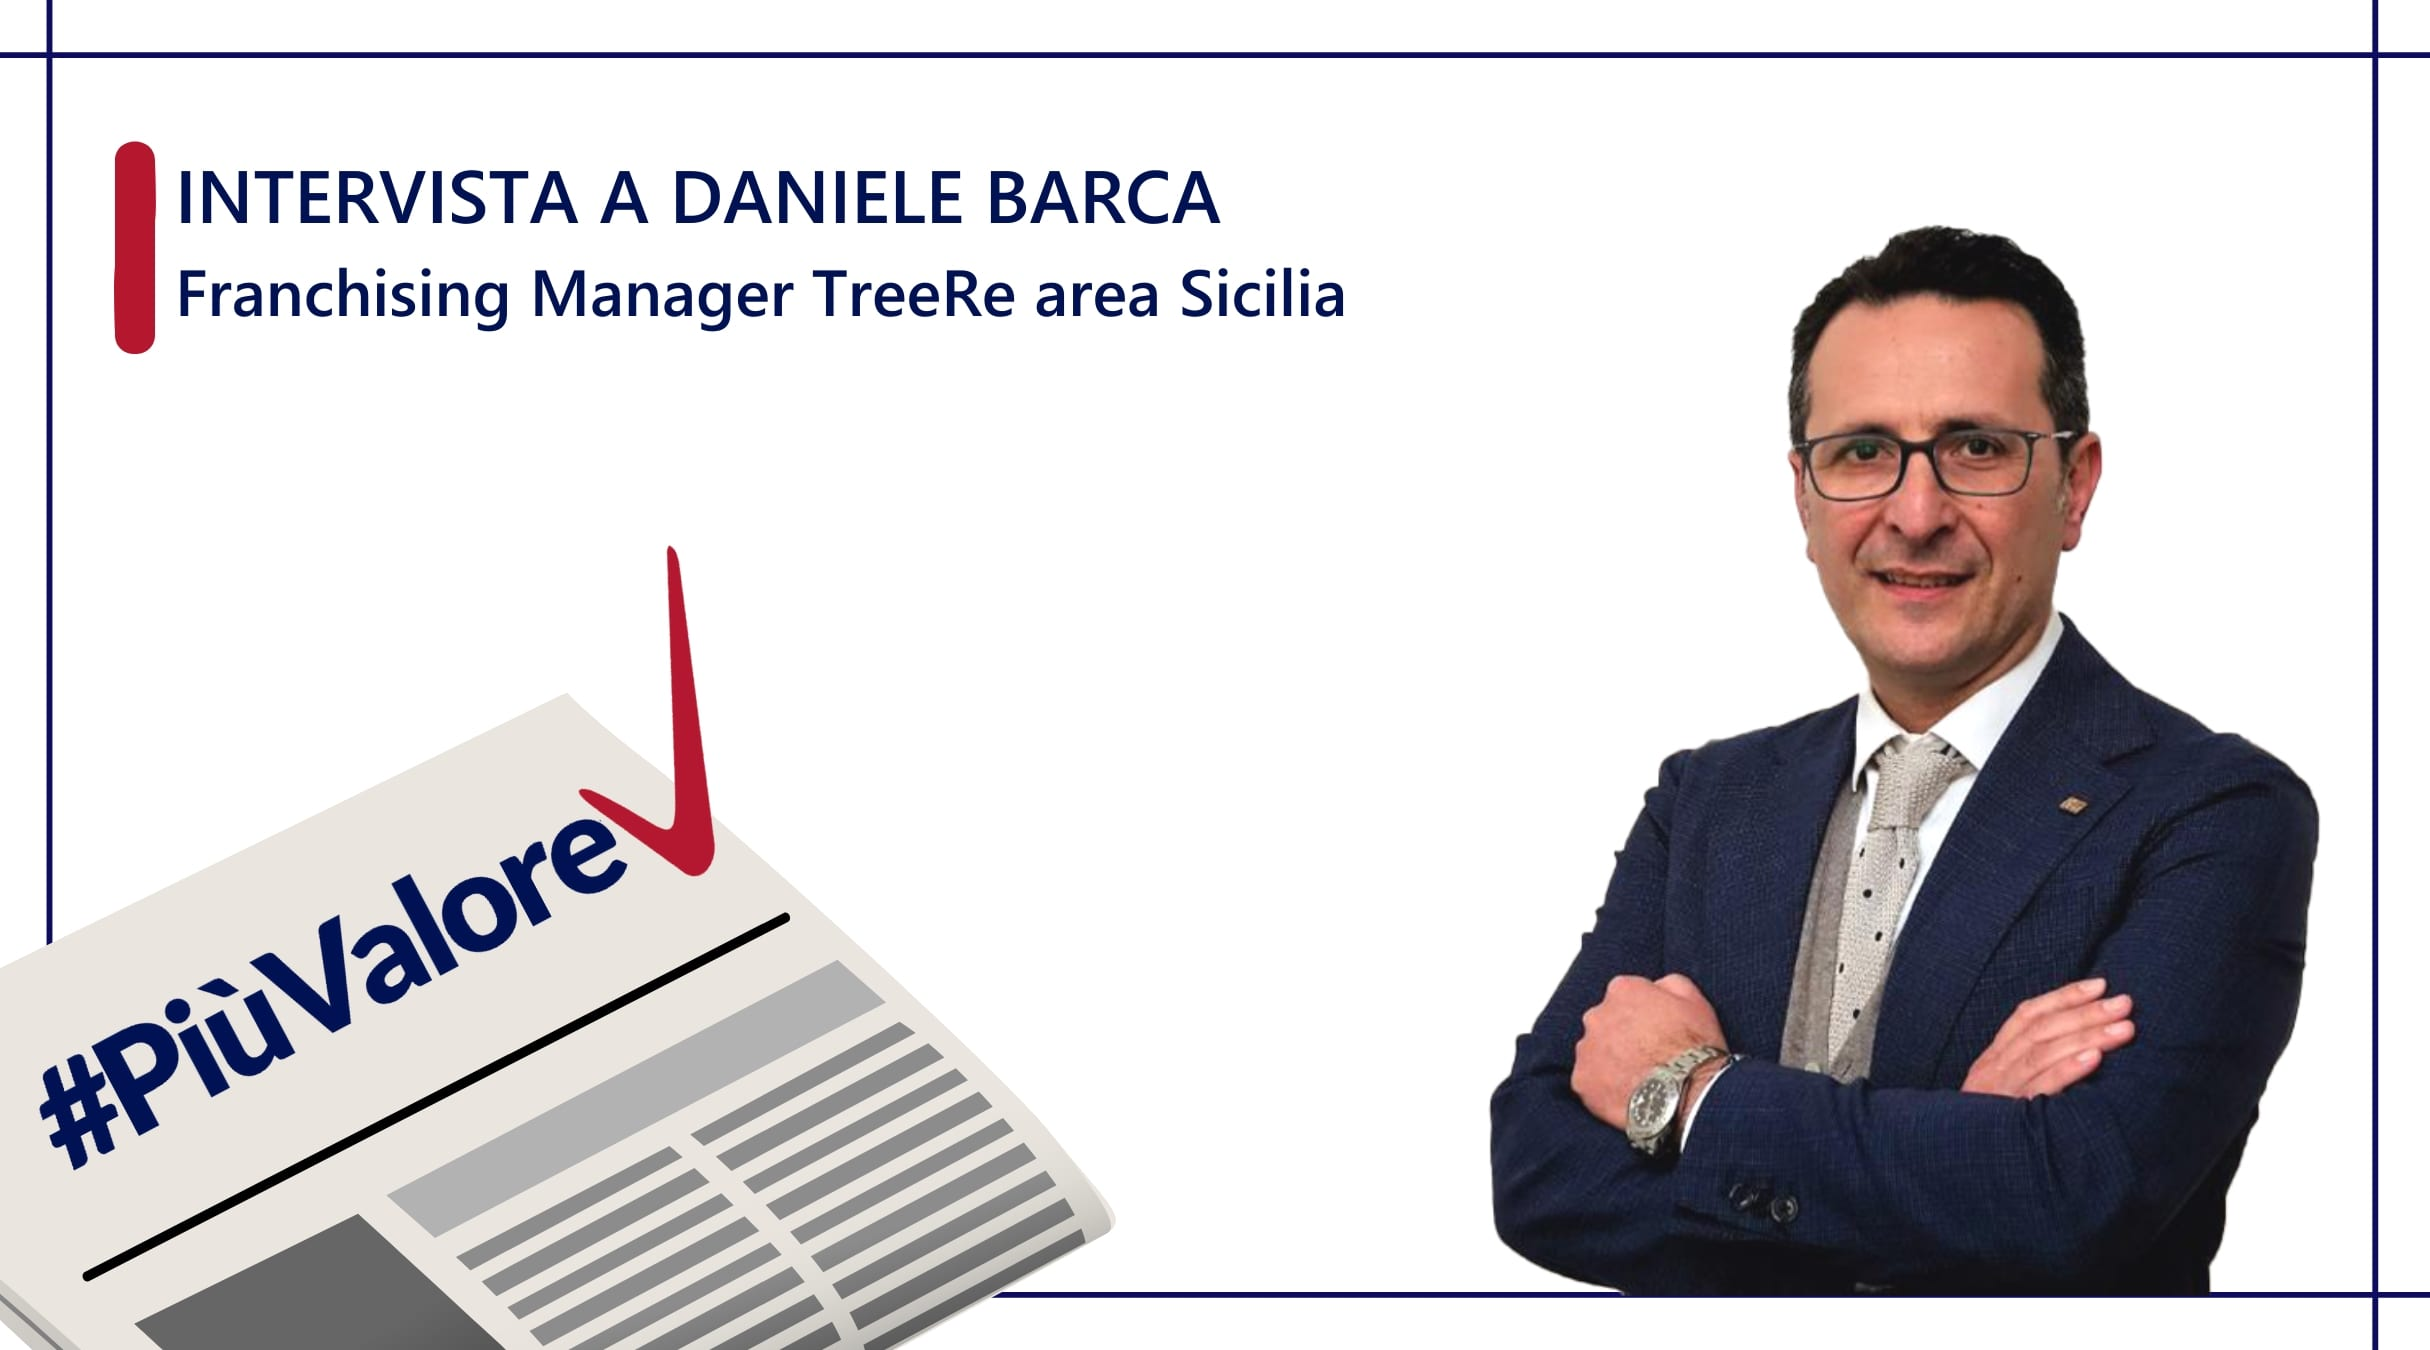 franchising manager daniele barca